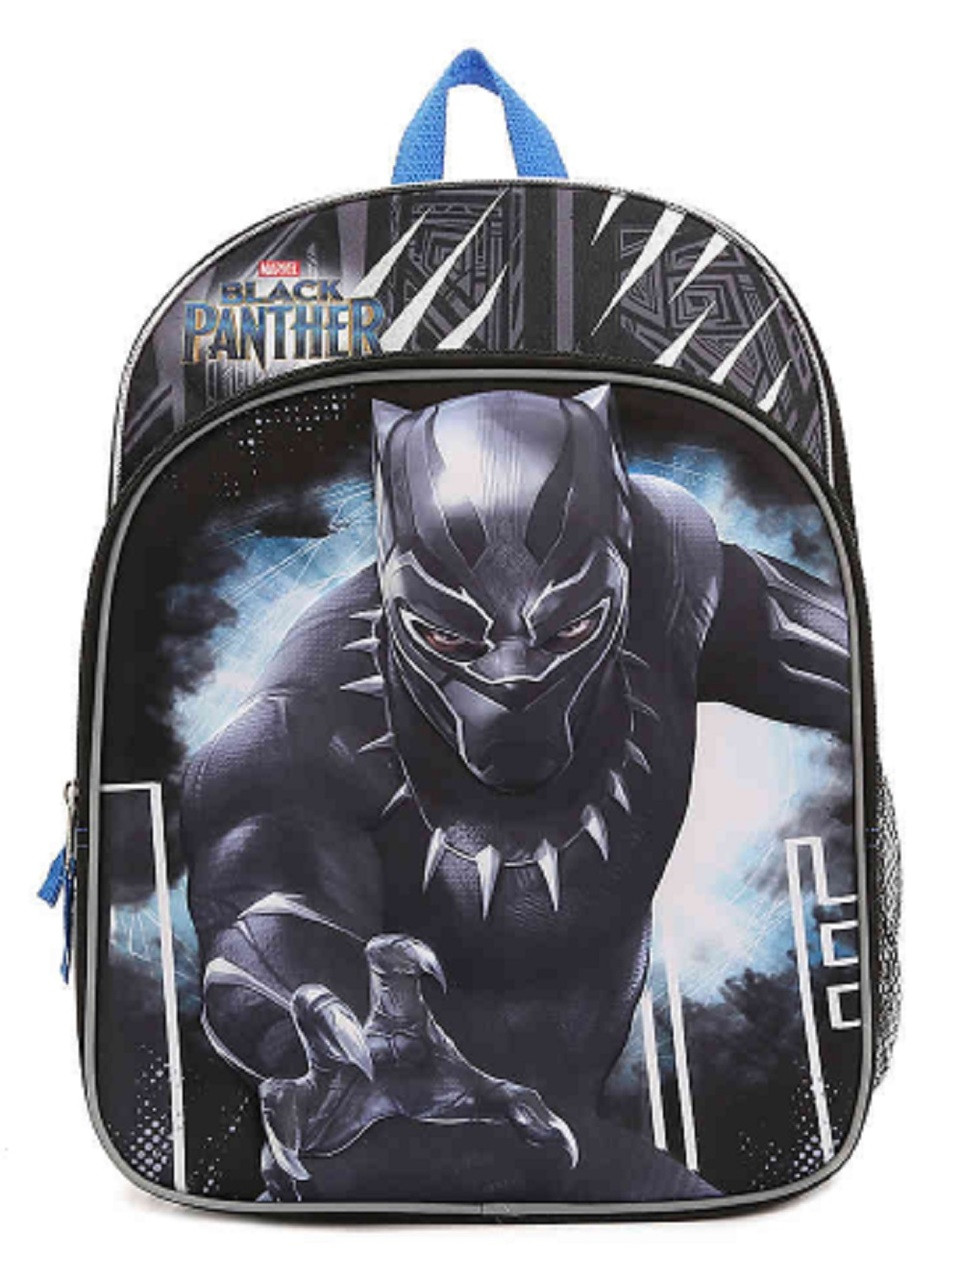 Backpack - Black Panther - Large 16 Inch - 3D - Cordura